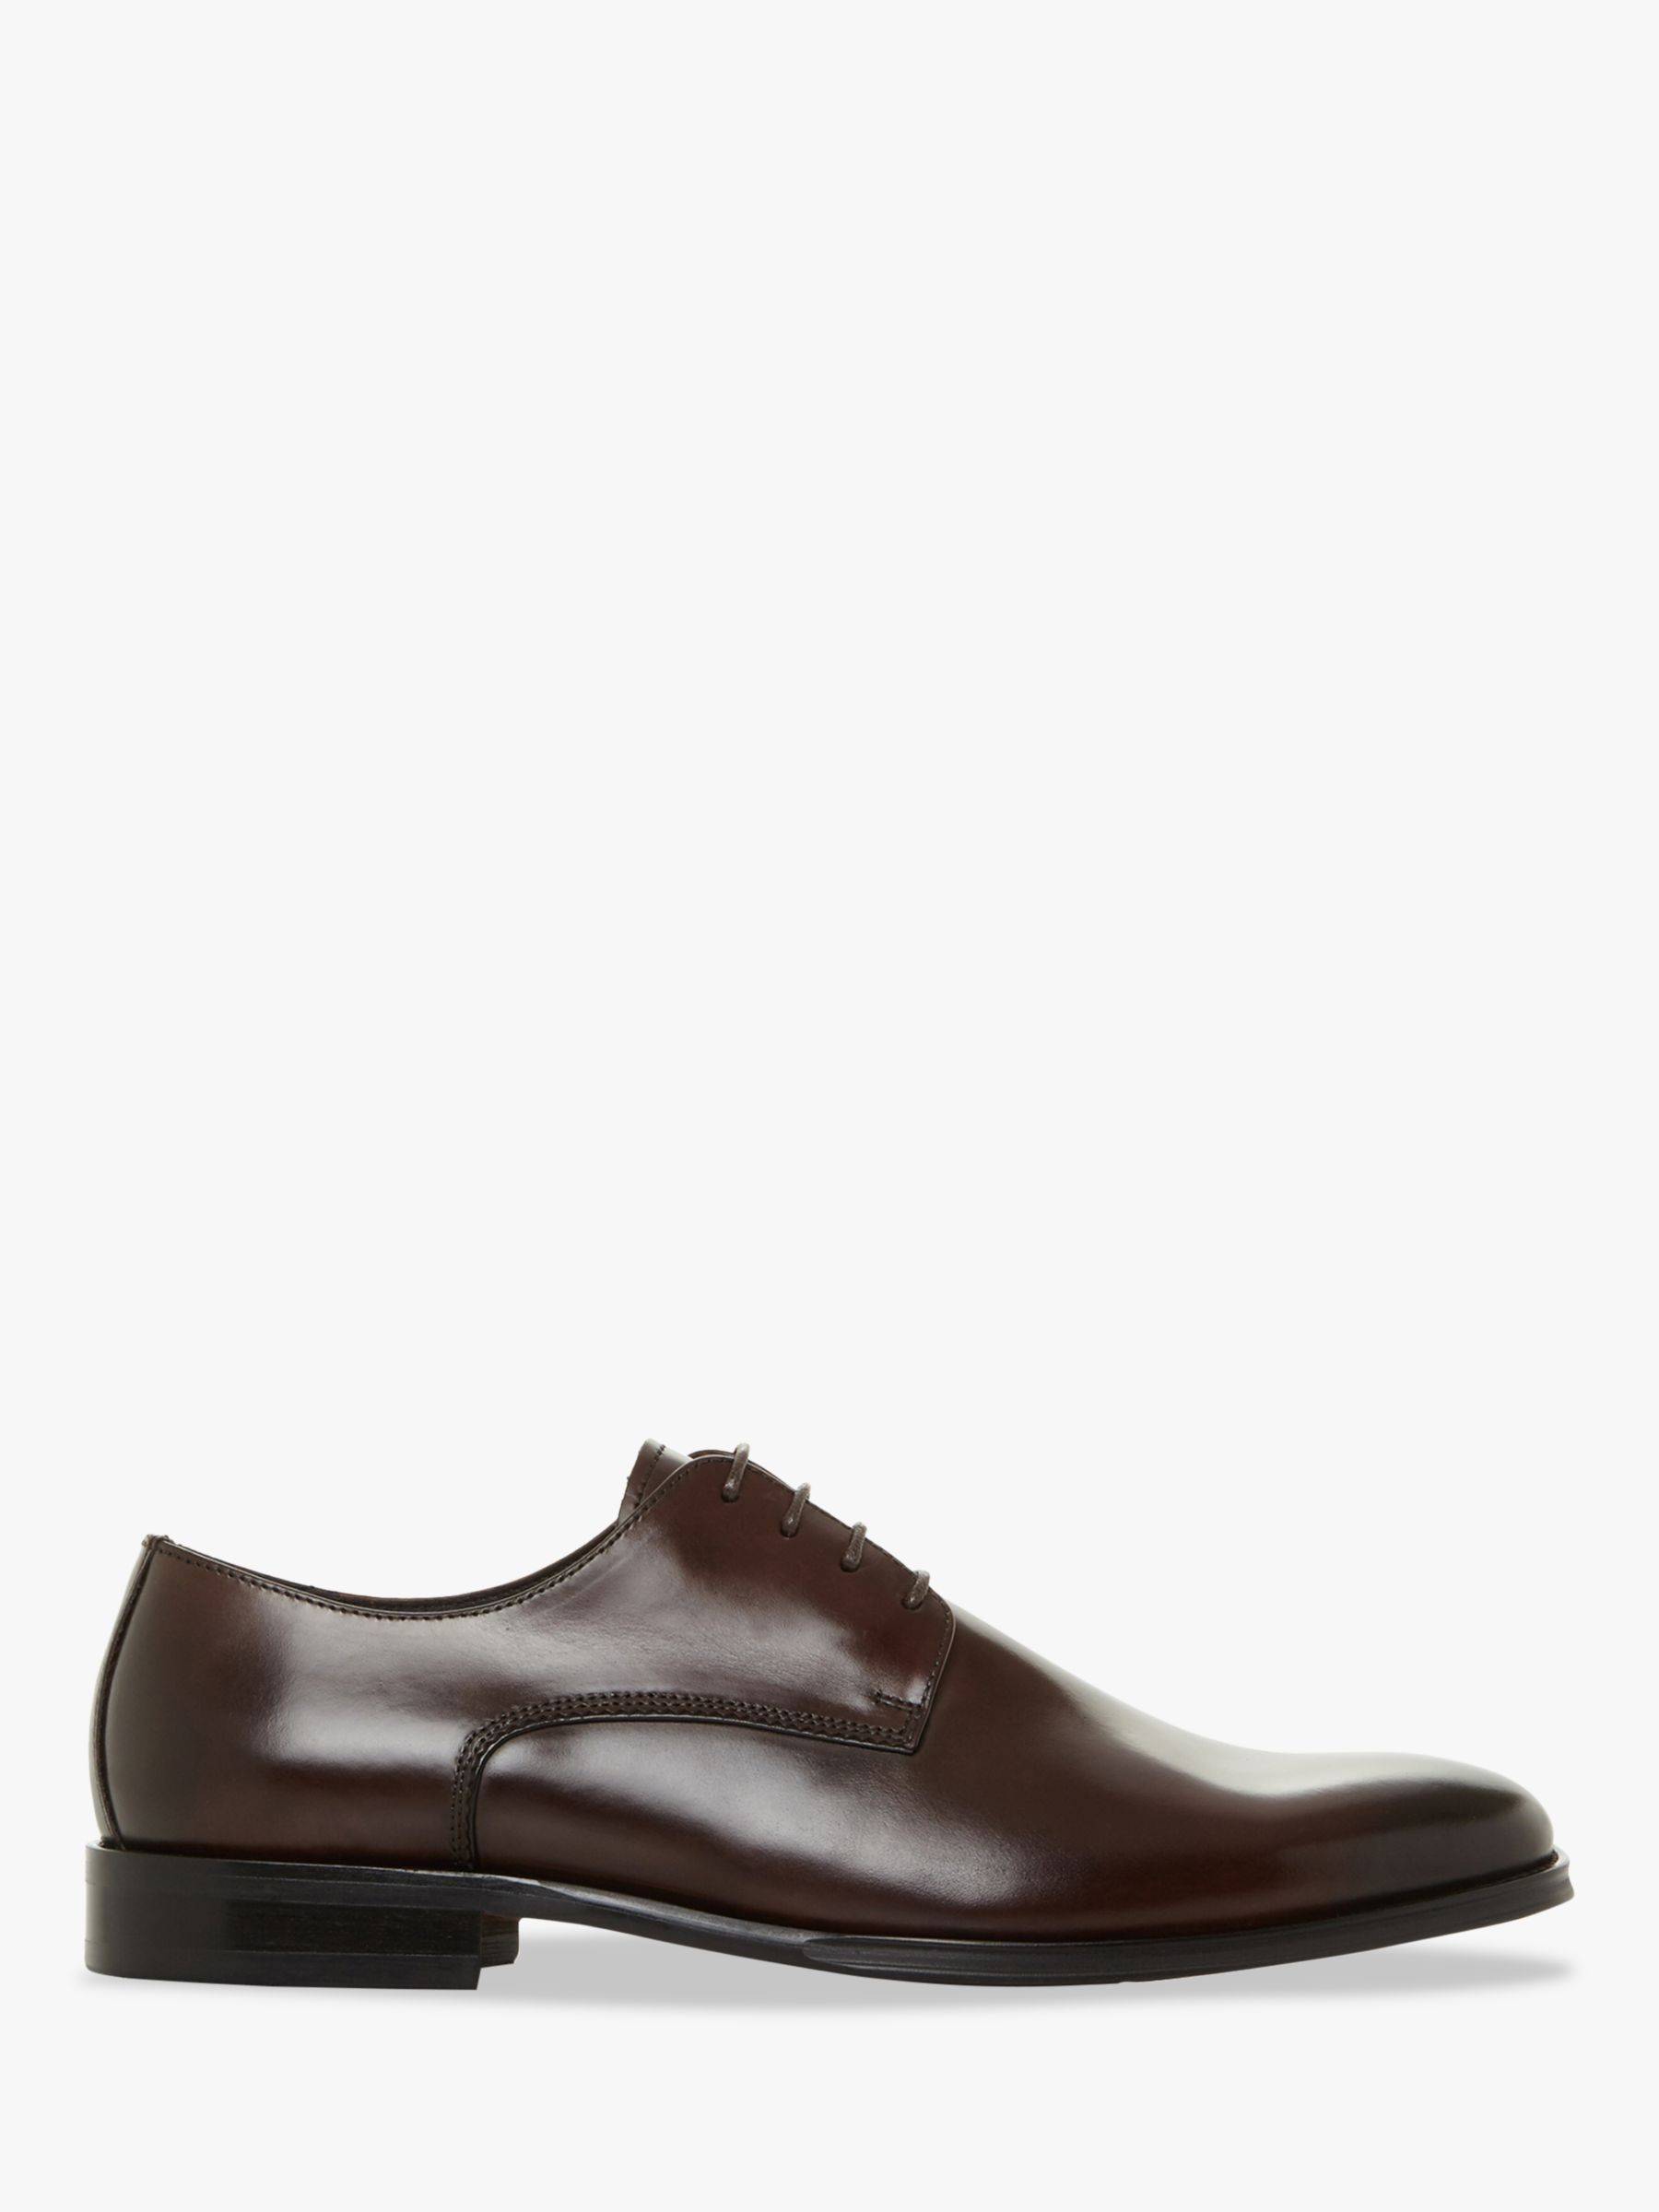 Bertie Bertie Saddle Leather Derby Shoes, Brown